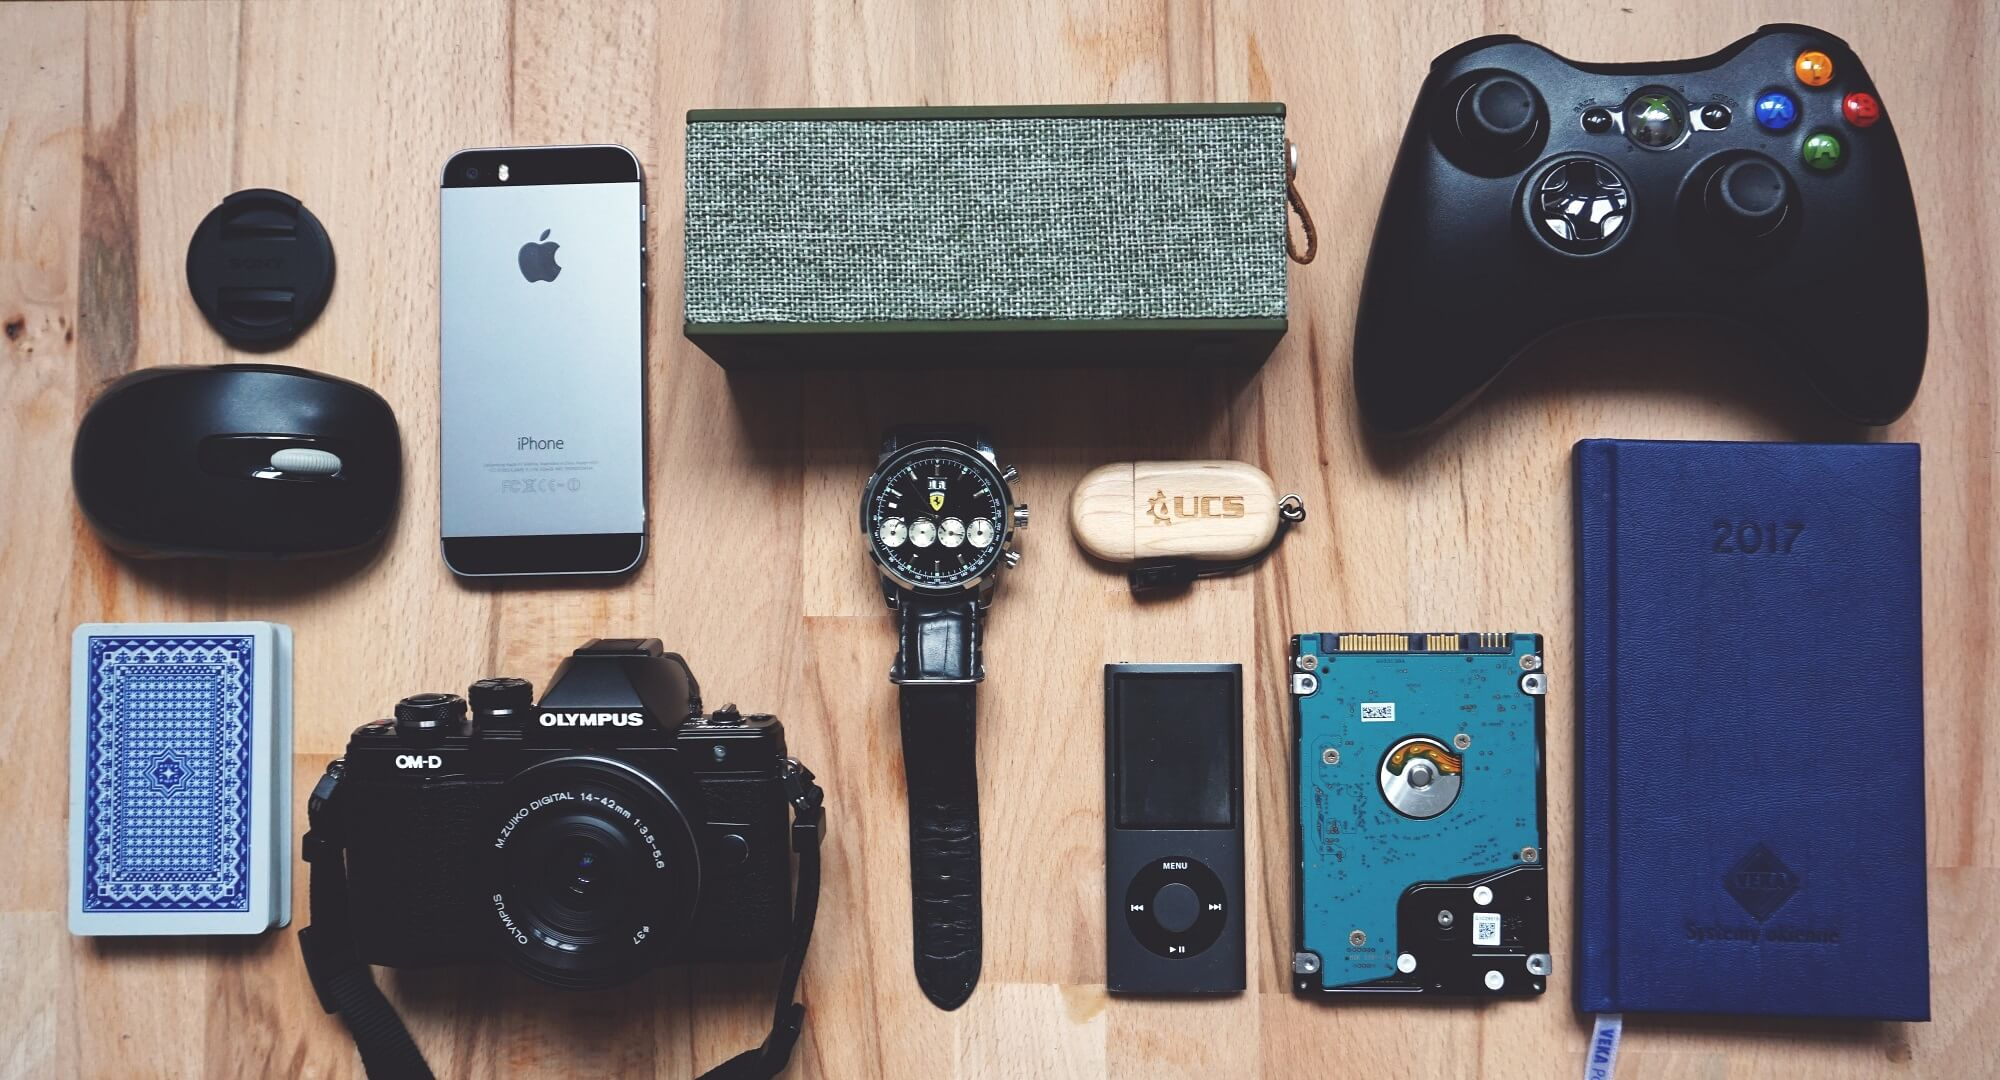 Top 20 Influential & Innovative Gadgets Of All Time